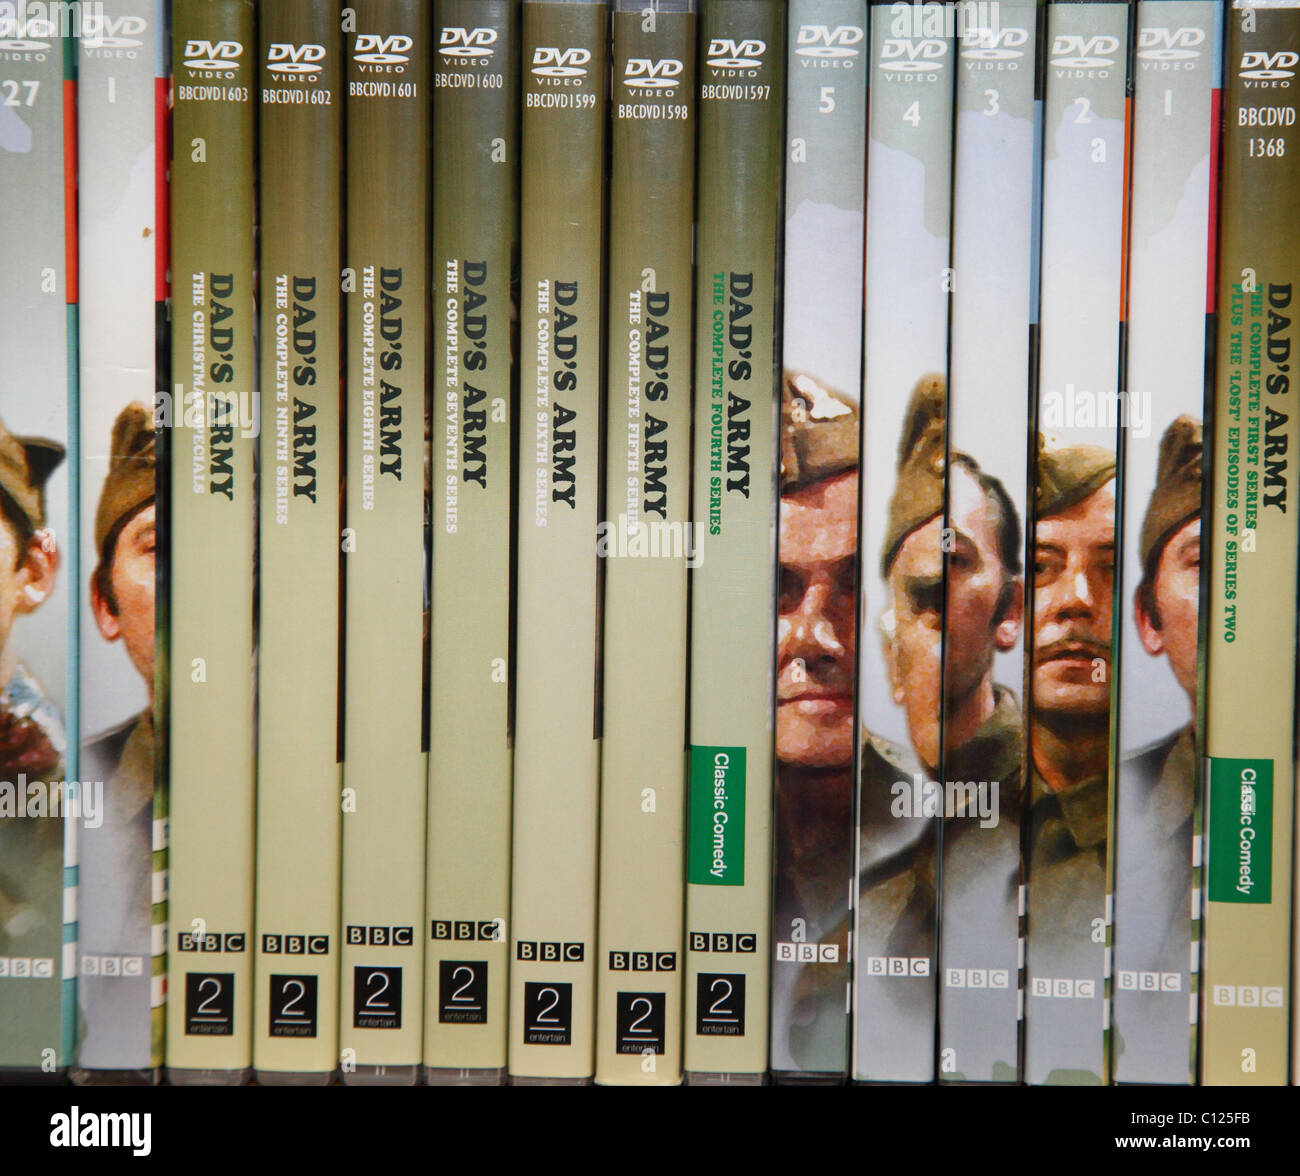 The BBC Dad's Army comedy TV show DVD collection. - Stock Image